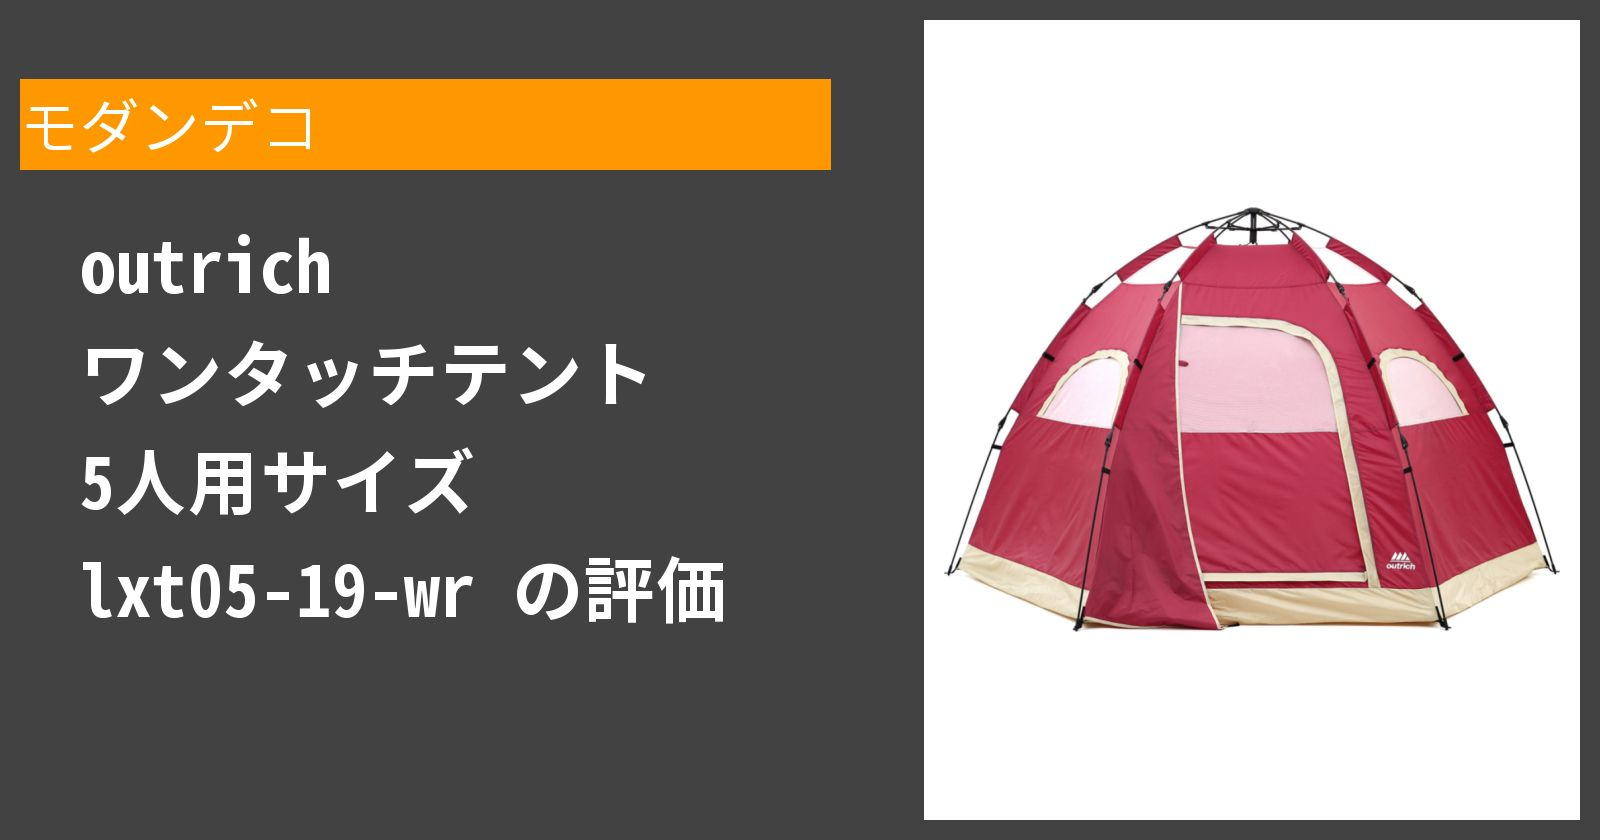 outrich ワンタッチテント 5人用サイズ lxt05-19-wrを徹底評価